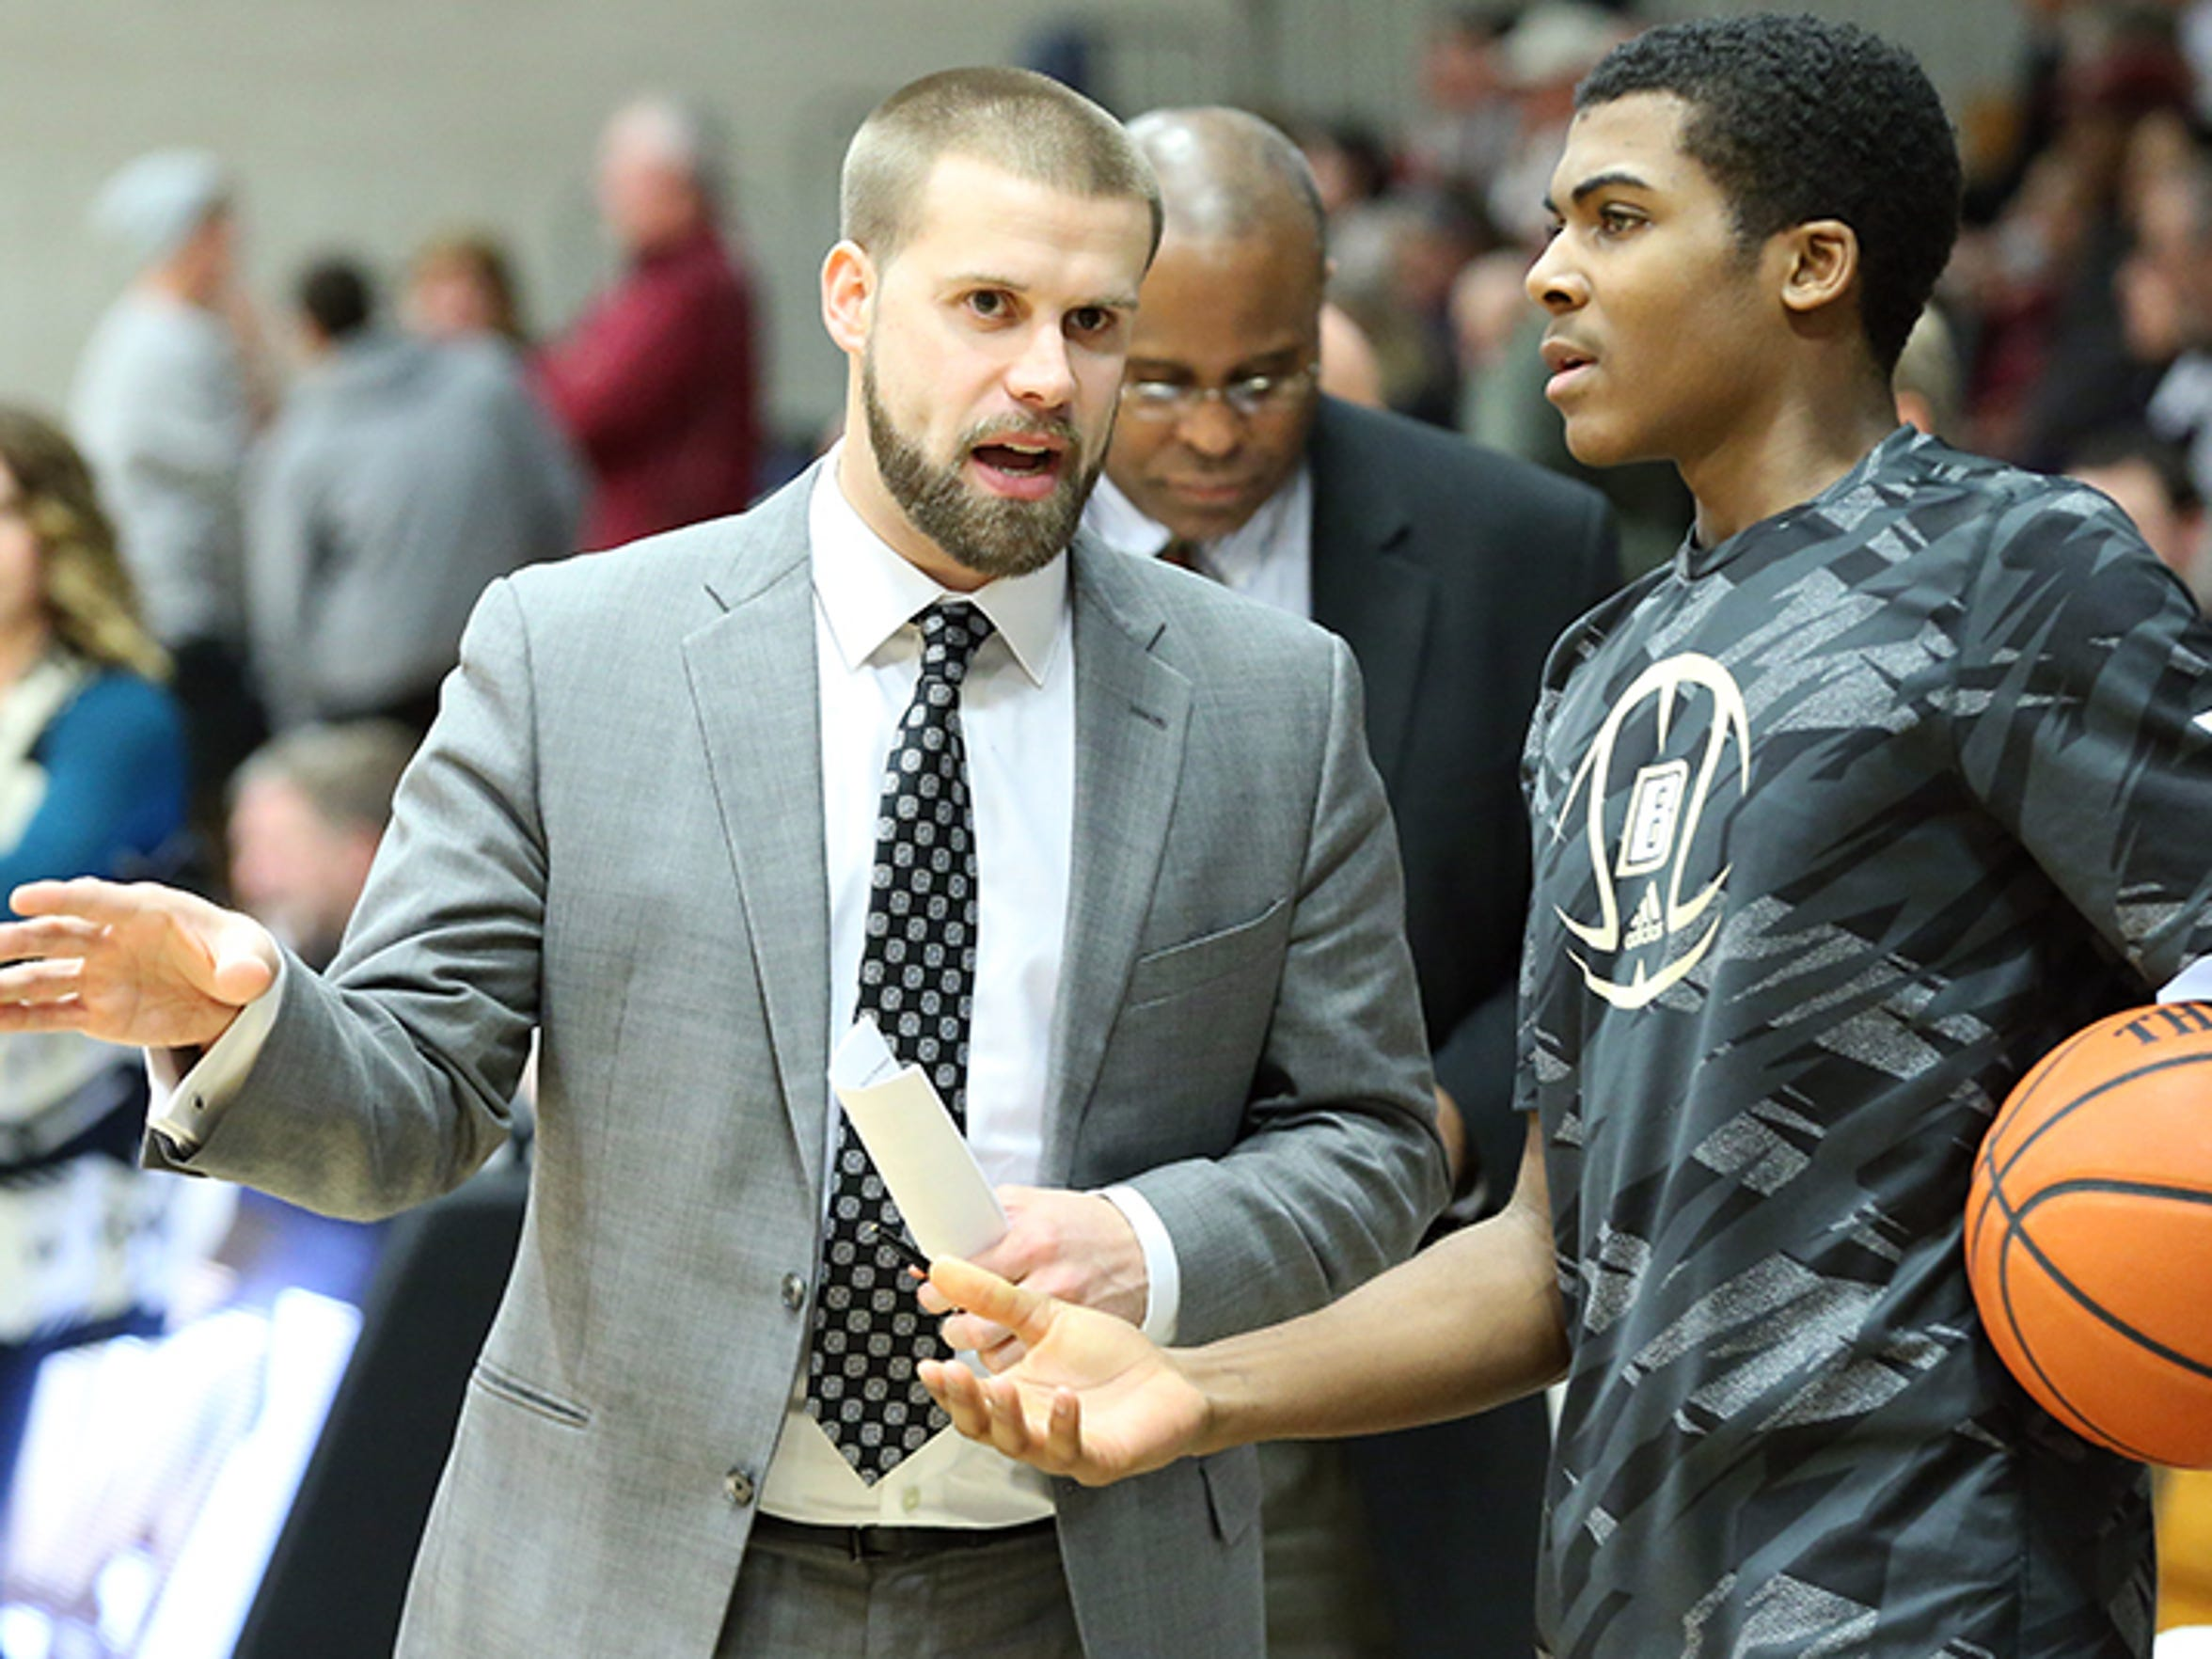 Chris Burns starred at Bryant University as a player